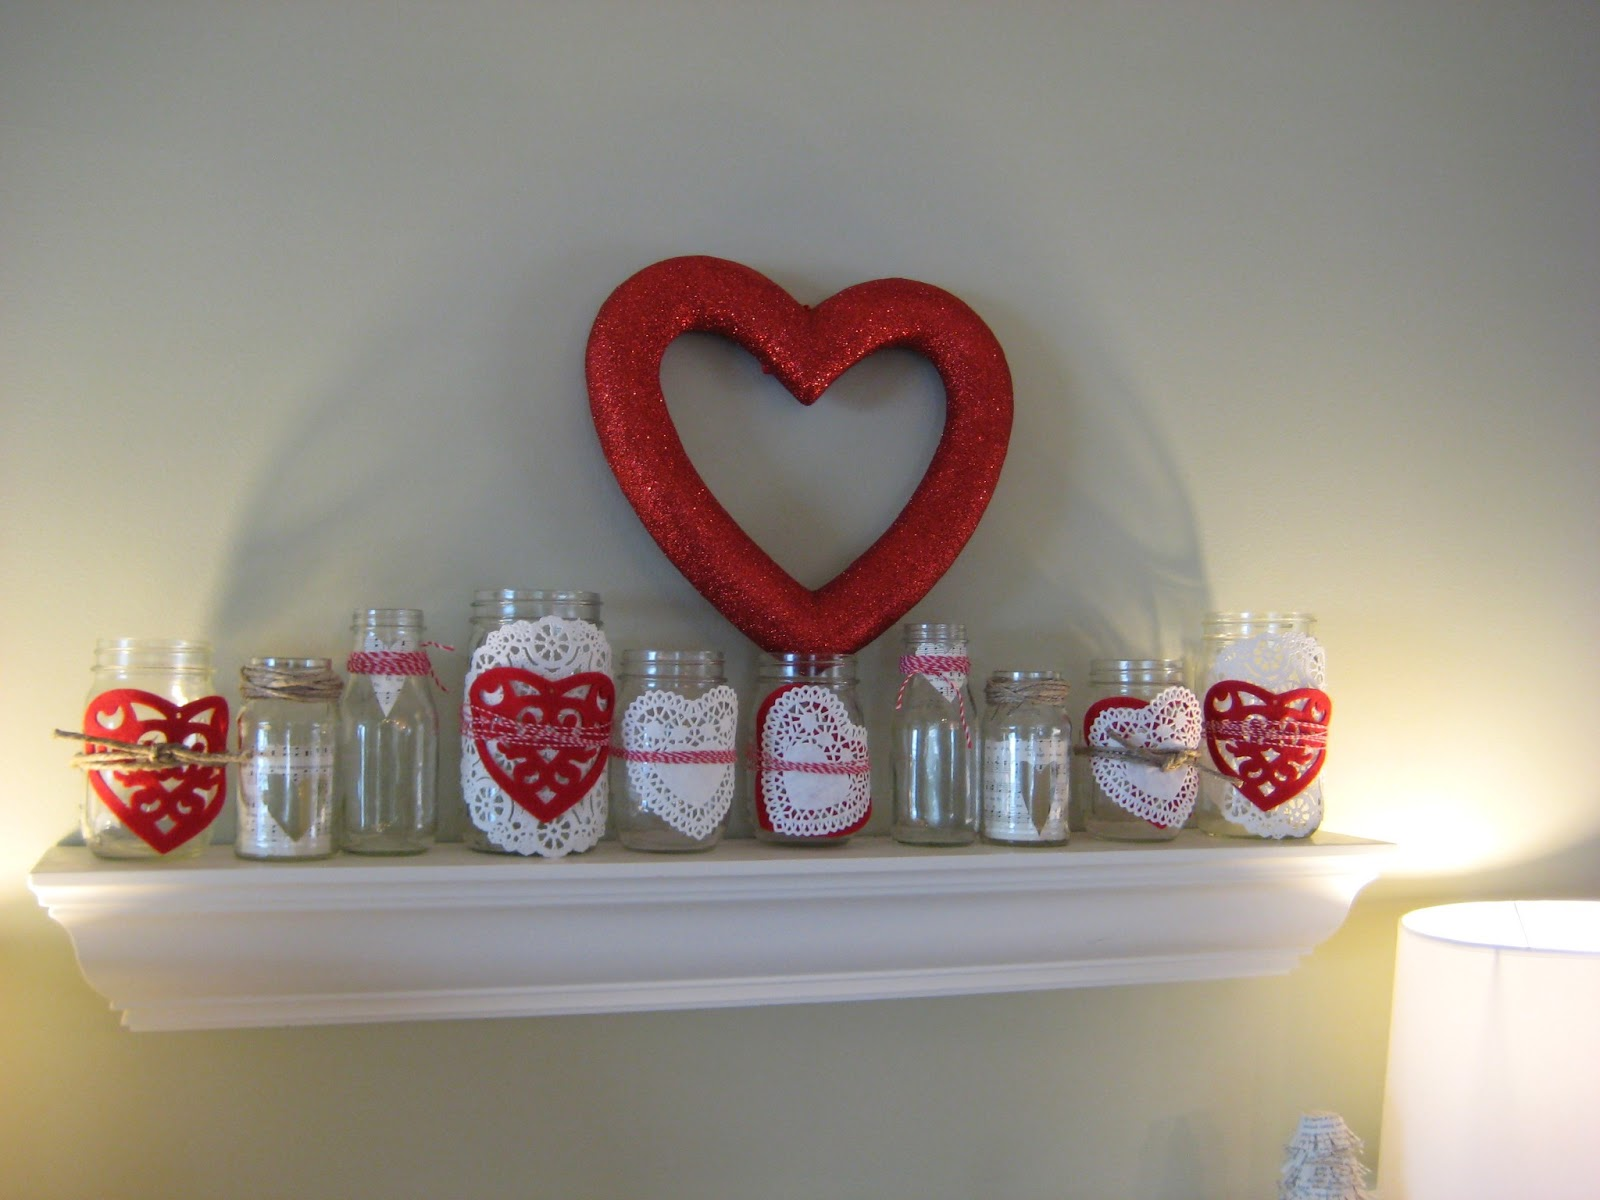 leaf and letter handmade: heart decorations!